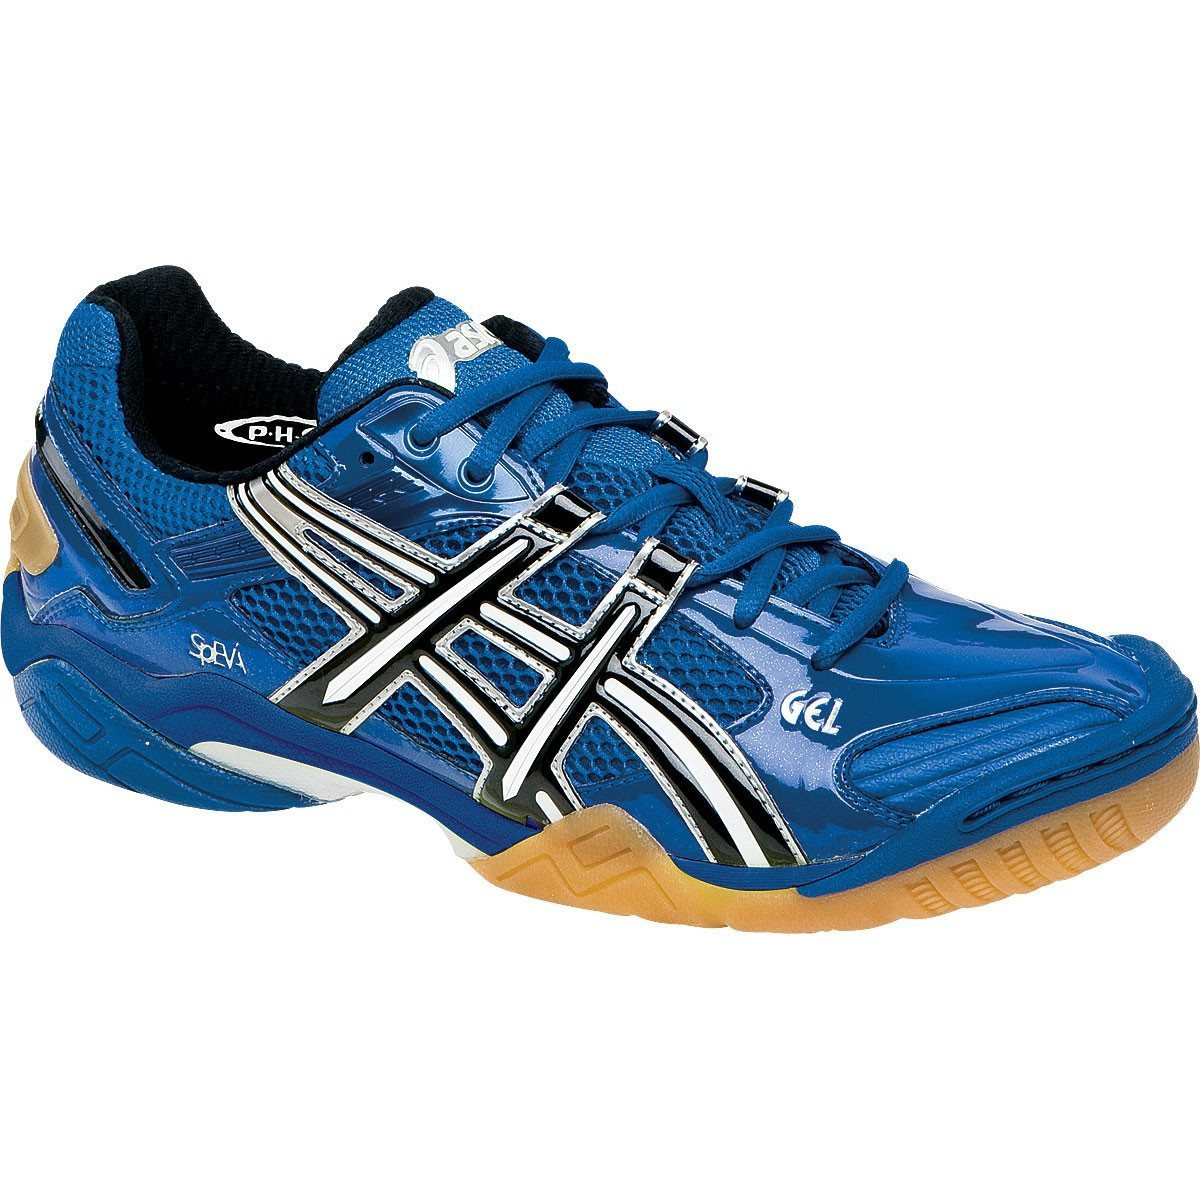 asics-gel-domain-2-squash-shoes-image